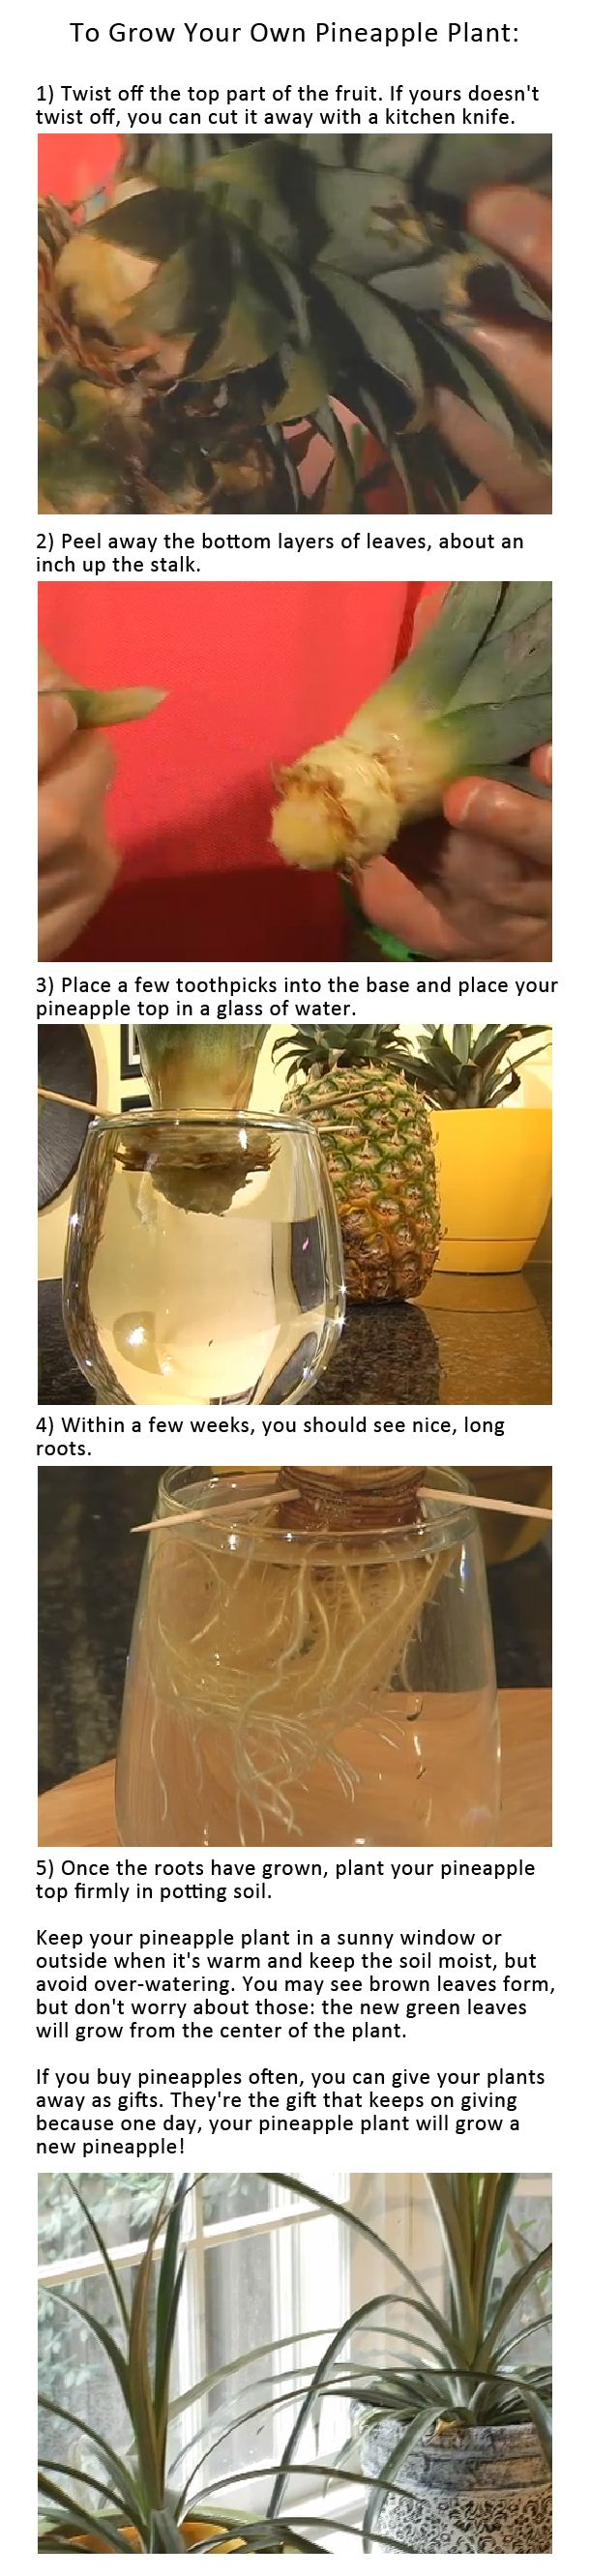 Grow Your Own Pineapple Plant.